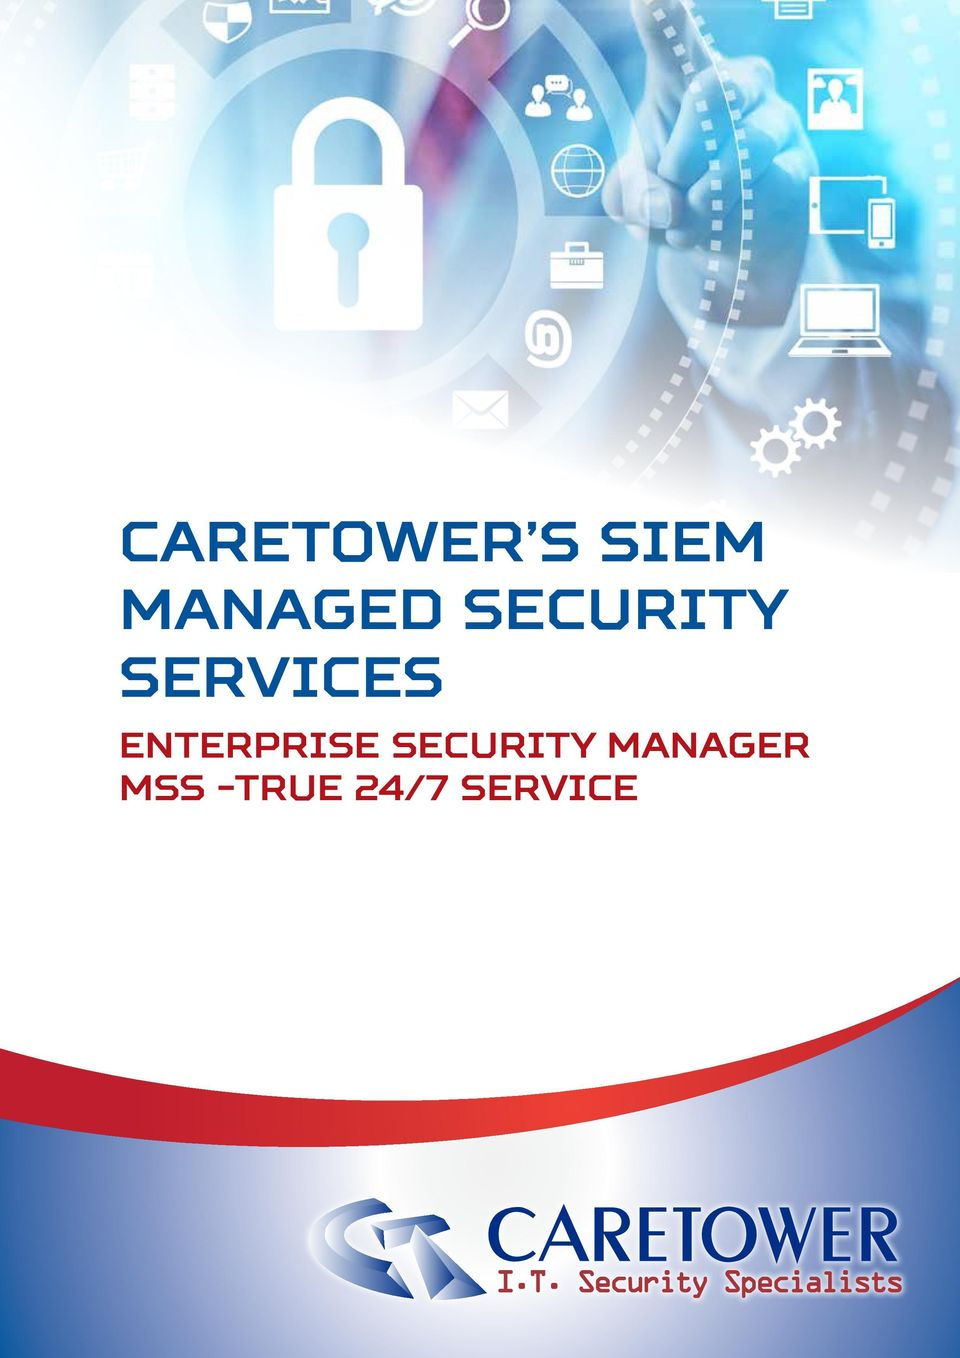 -TRUE 24/7 Service I.T. Security Specialists  Services 1